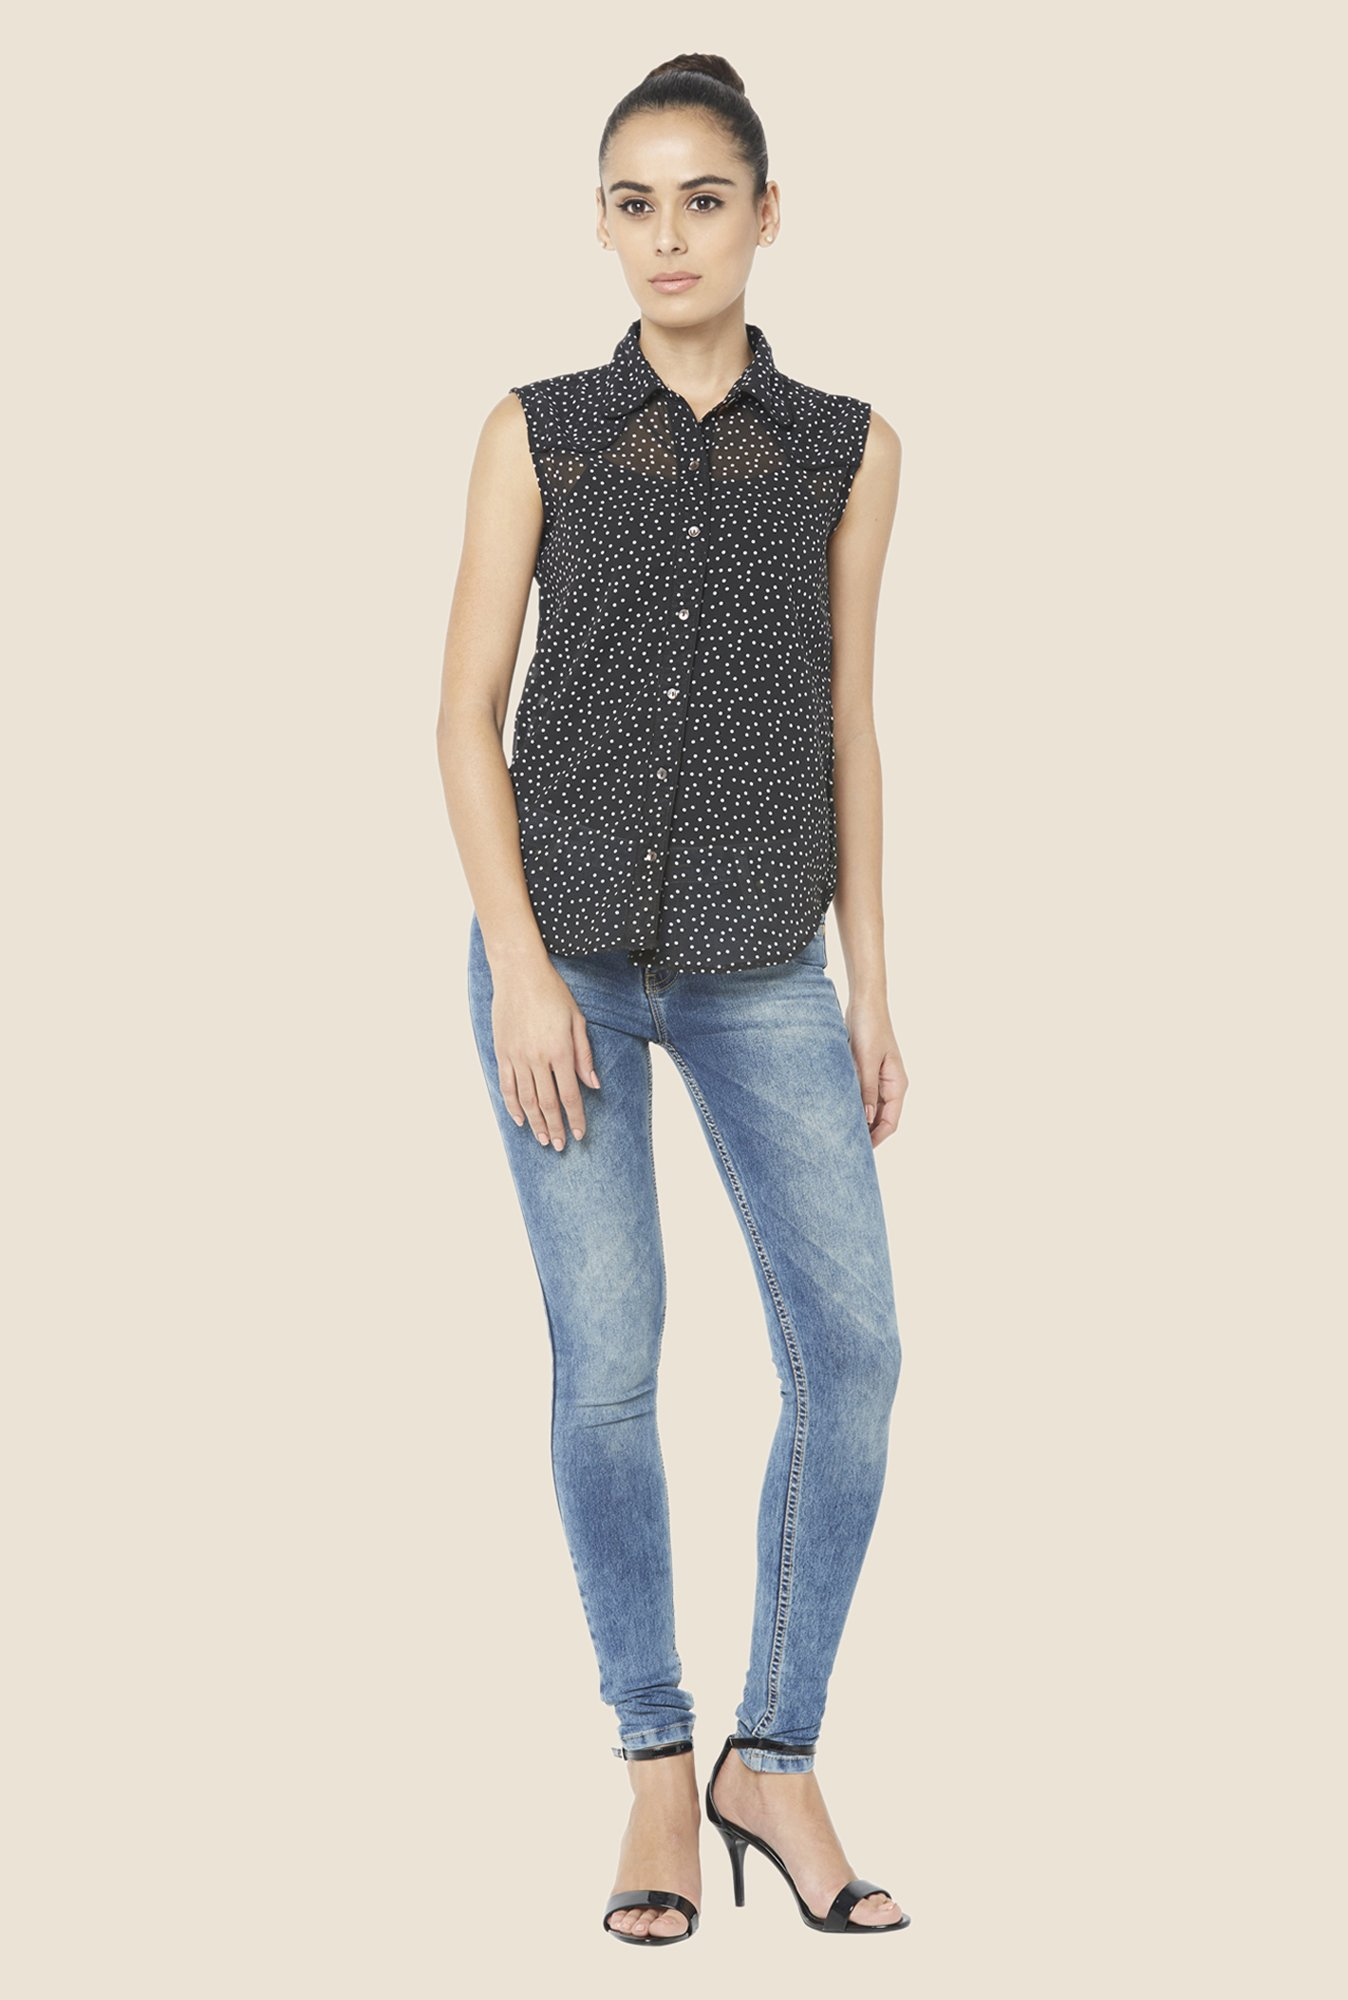 Globus Black Polka Dot Shirt